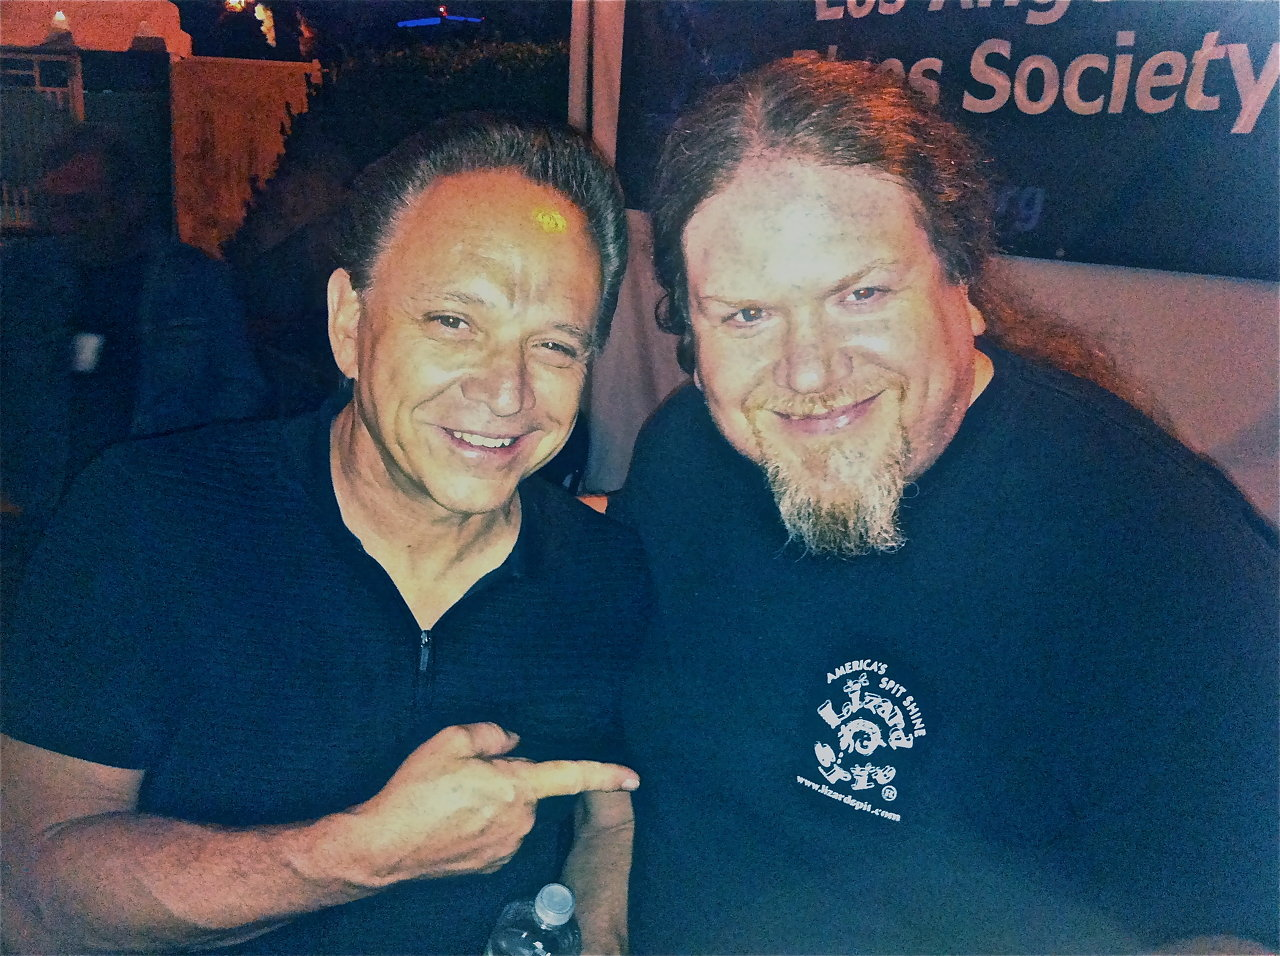 Ben with Jimmie Vaughan